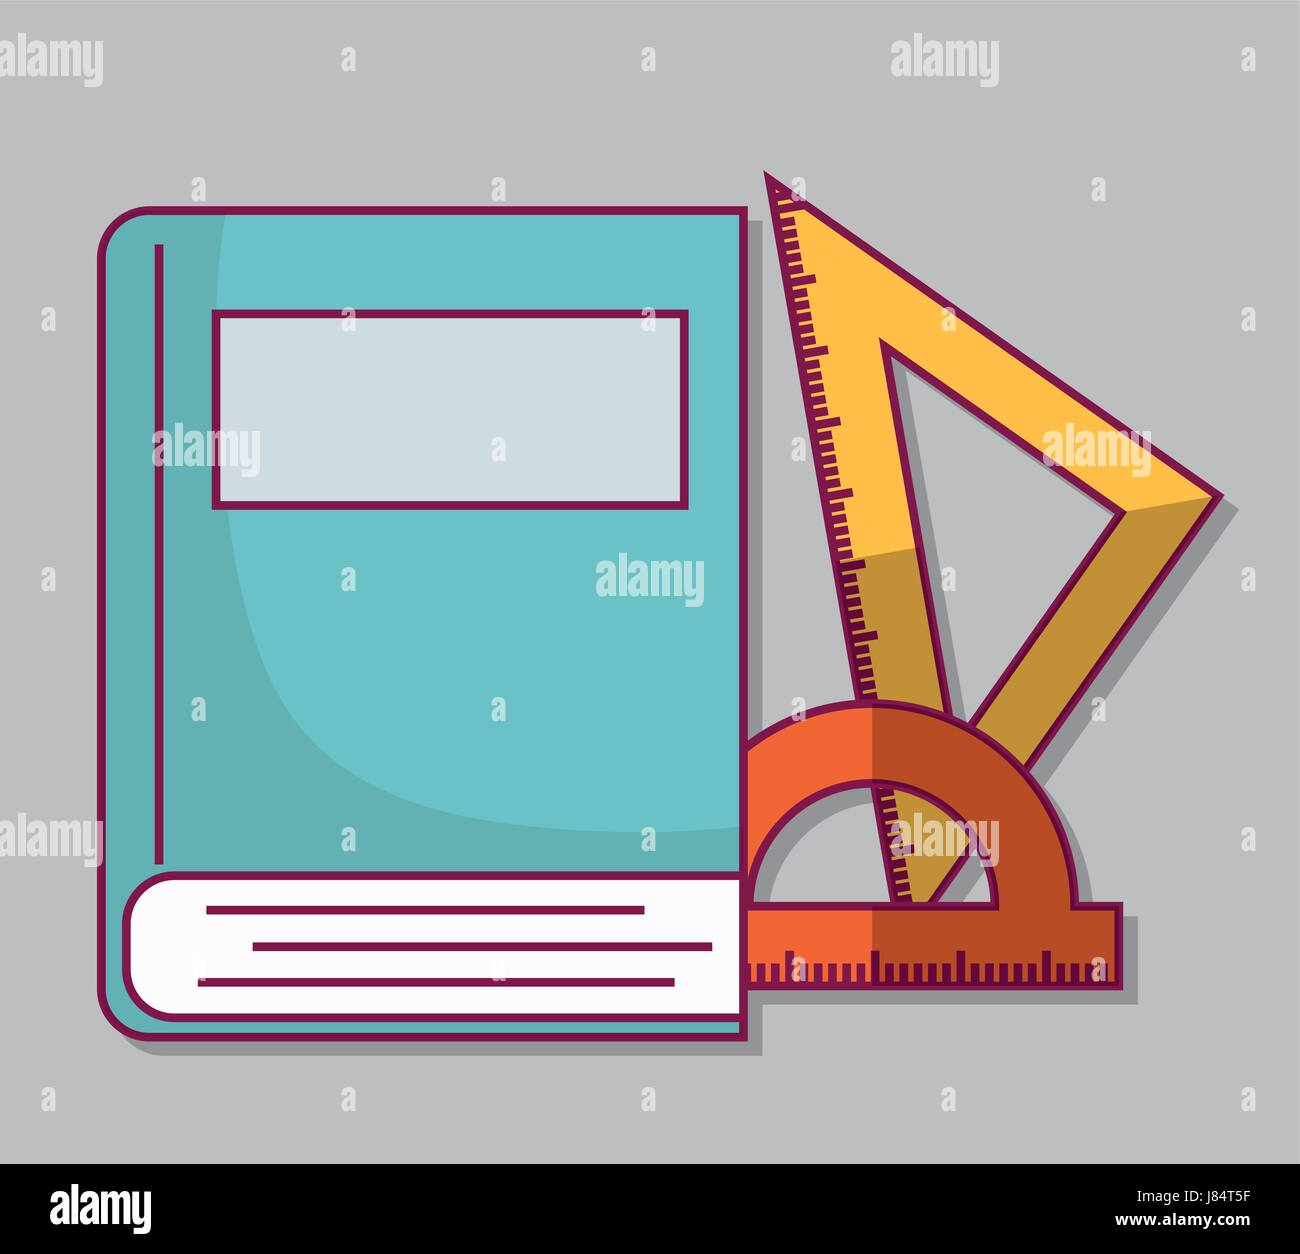 book and rulers icon - Stock Vector